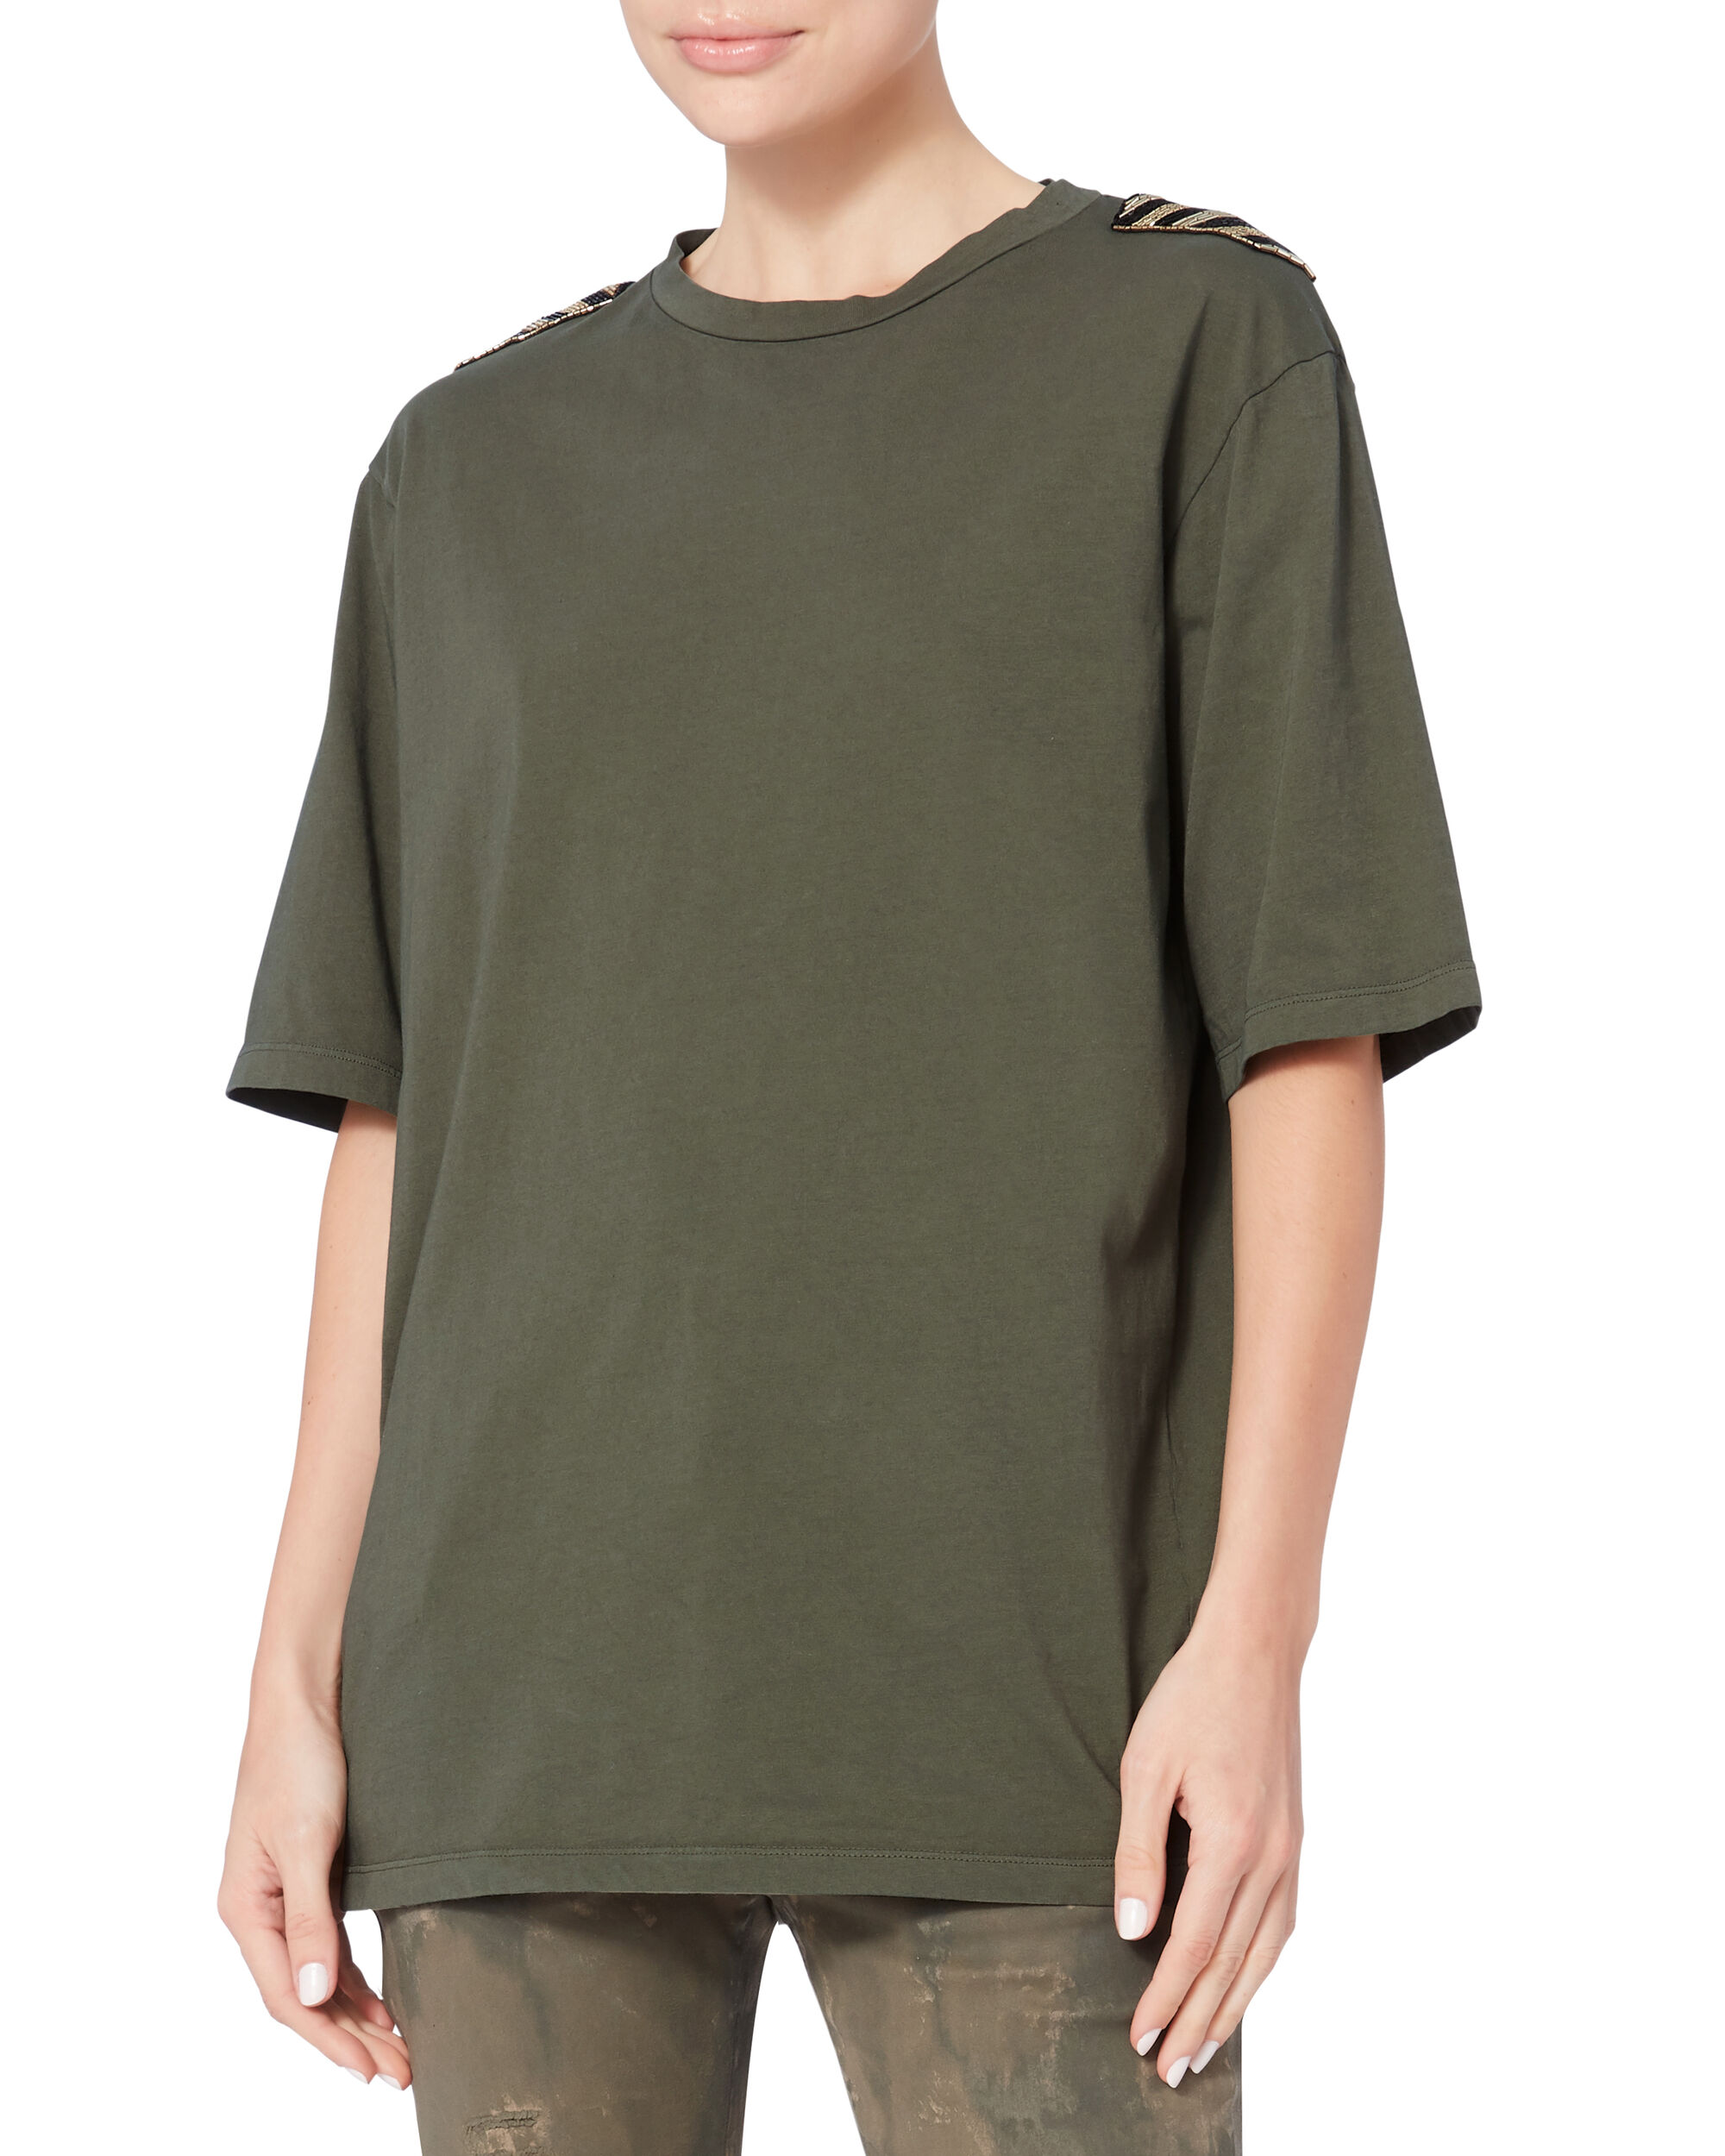 Beaded Accent Army Green T-Shirt, EMERALD, hi-res